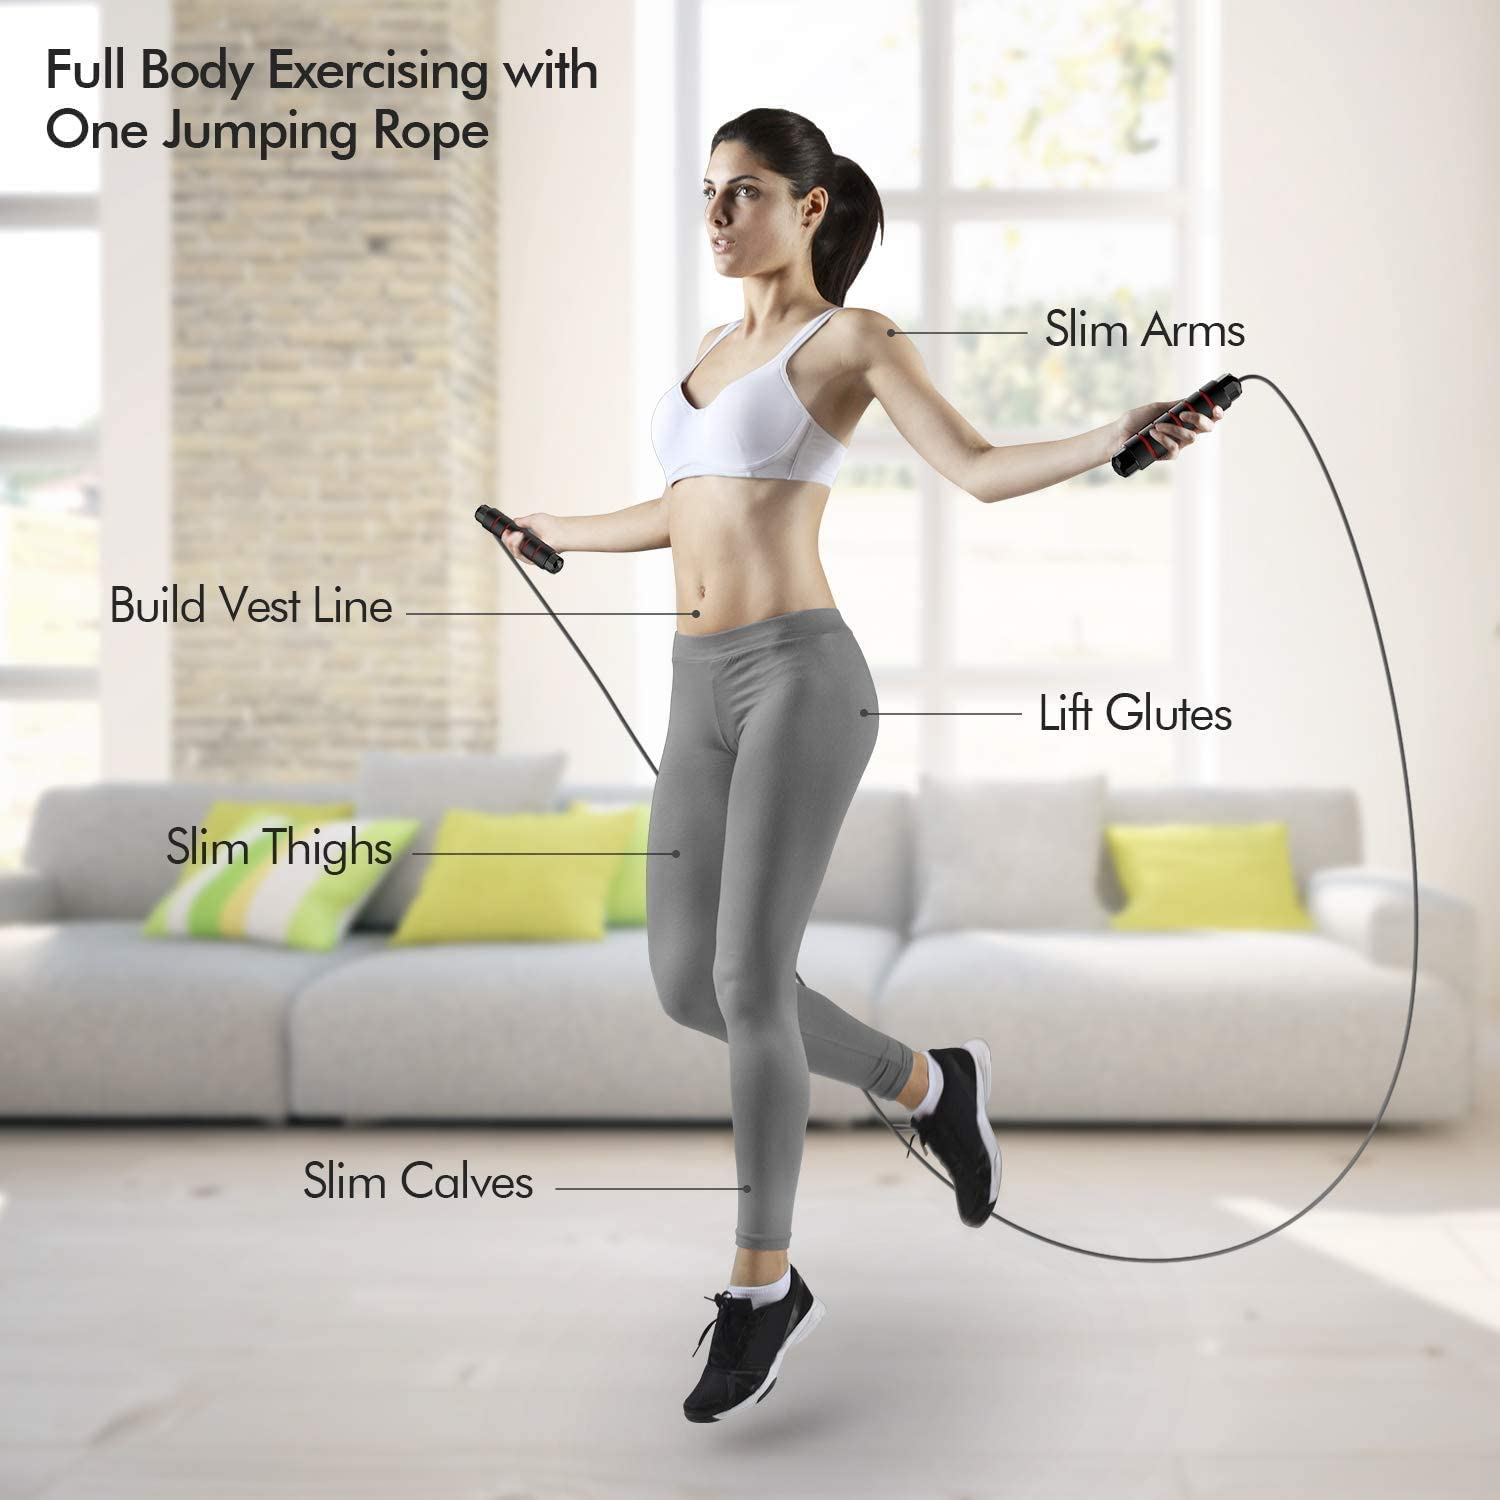 Adult adjustable skipping rope speed training home exercise skipping rope endurance training and fitness downhill rope with non-slip soft memory foam handle,professional skipping rope fitness use